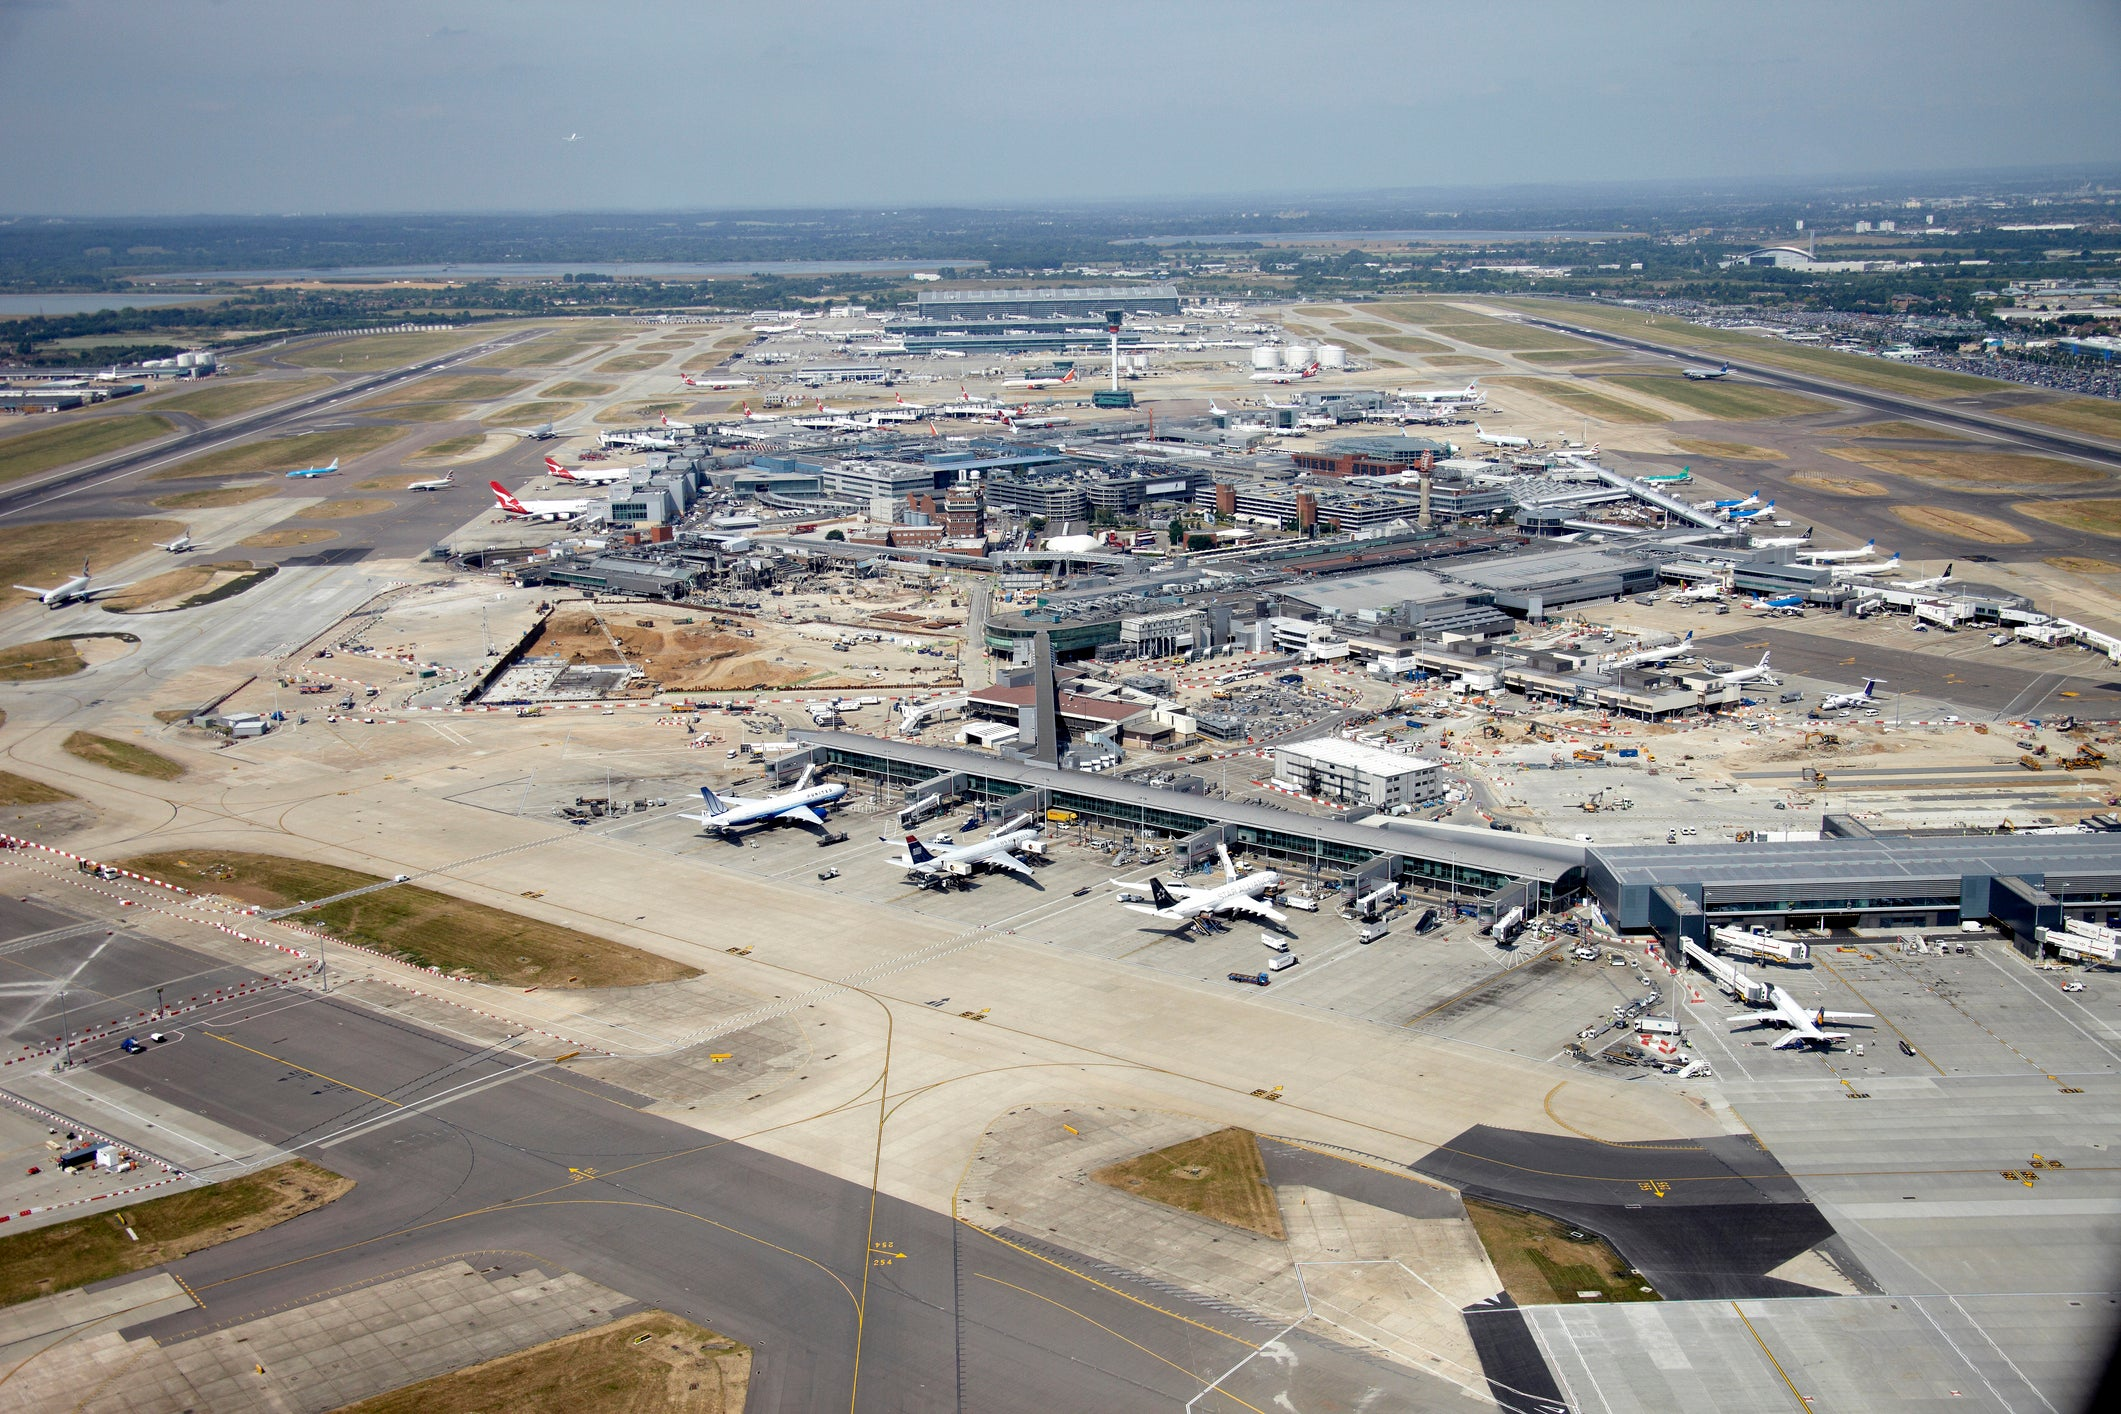 UK supreme court rules Heathrow third runway can go ahead